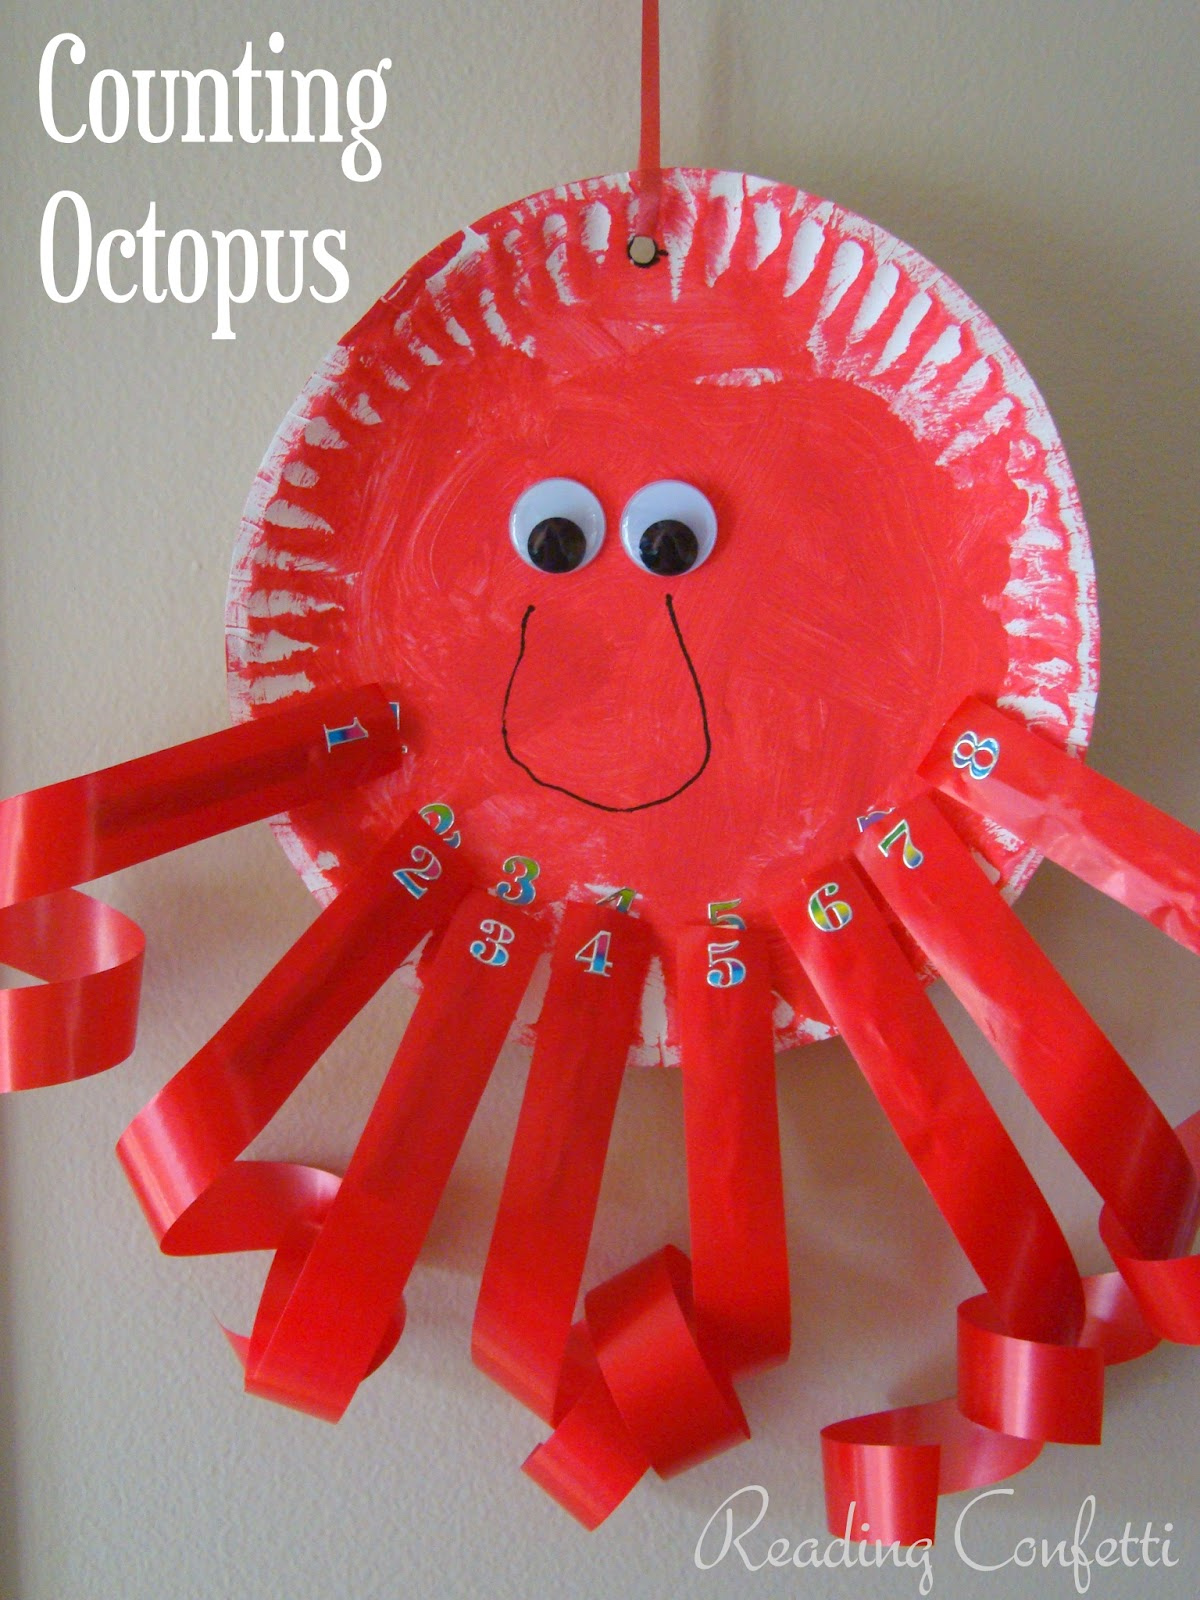 Counting Octopus Clothespin Craft Reading Confetti